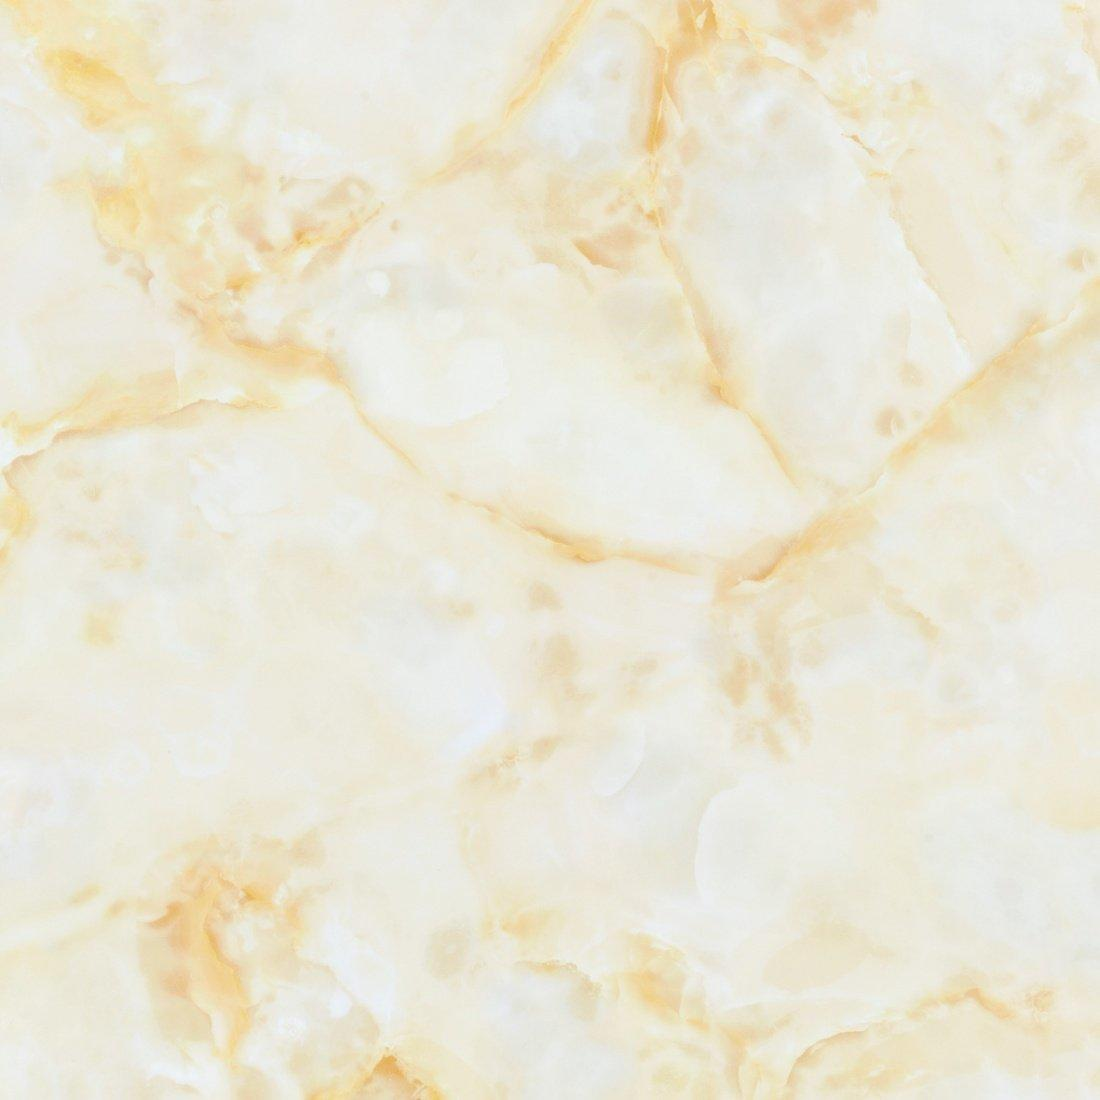 Diamond full polished glazed porcelain Marble tiles 80x80cm VJG8914F VGJ8913F VGJ8912F VGJ8923F 80x80cm/32x32'